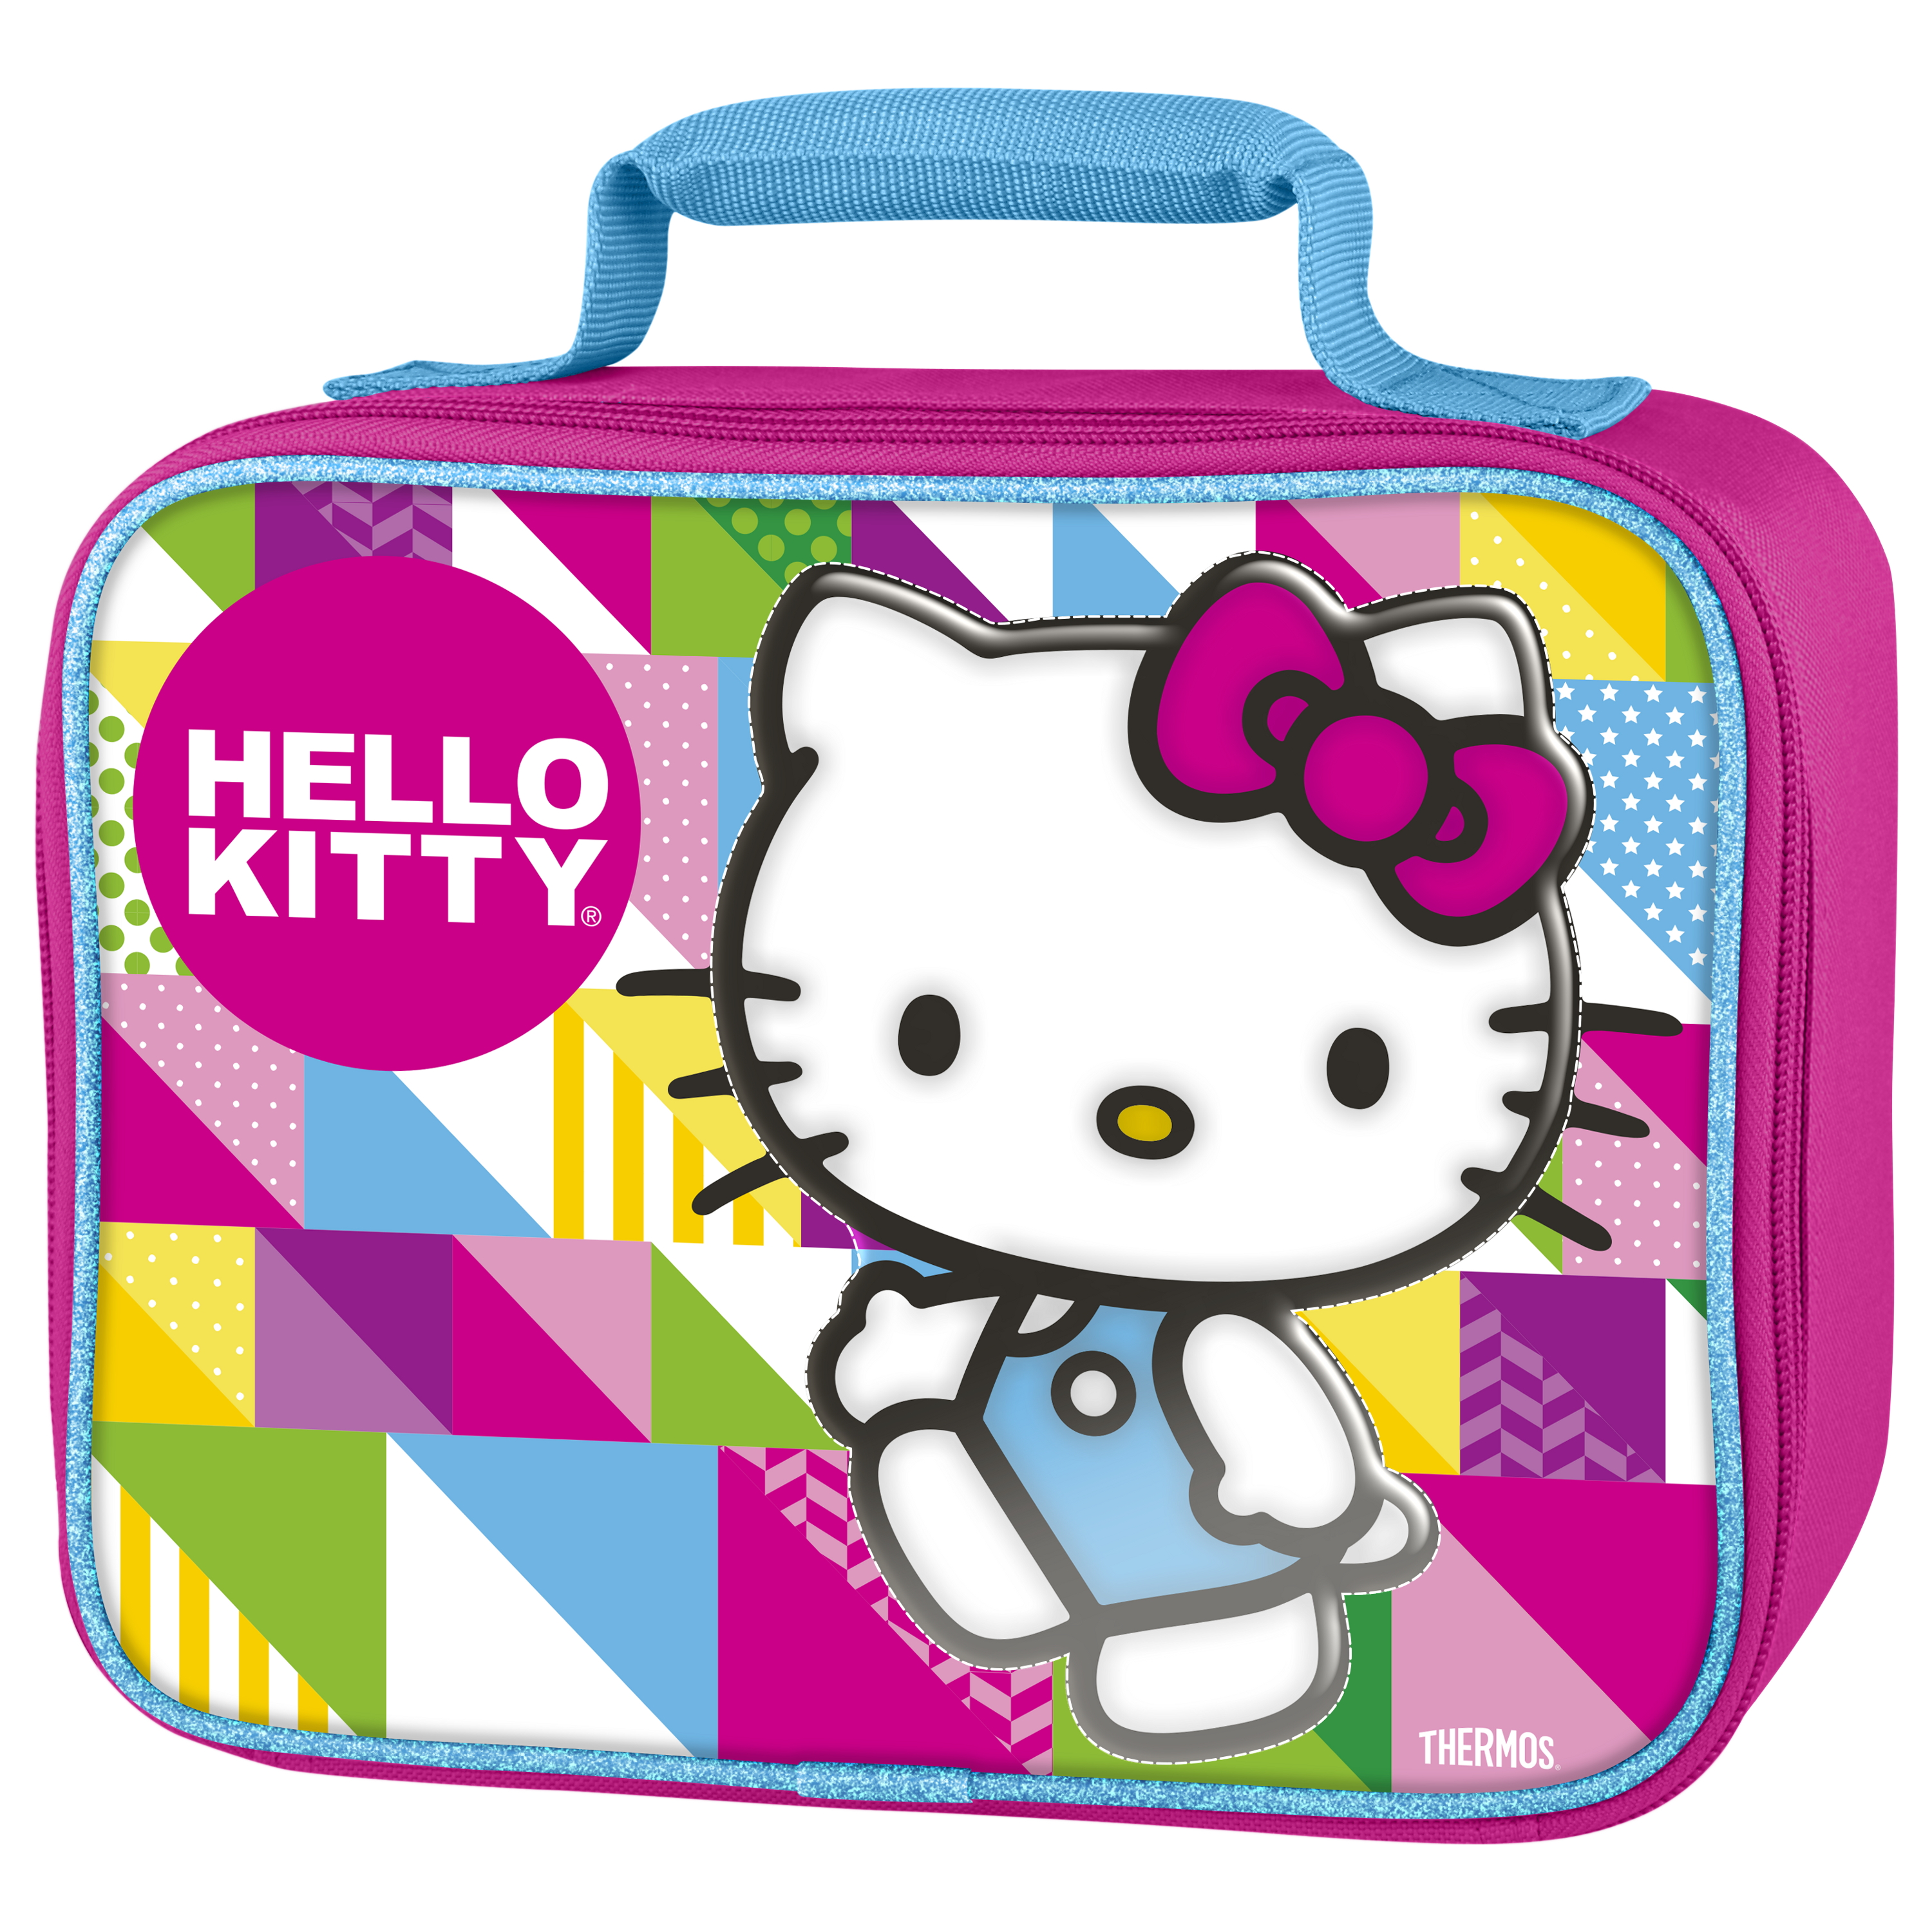 Thermos Hello Kitty TV Show 7.5 x 9.5 Inch Insulated Soft Lunch Bag